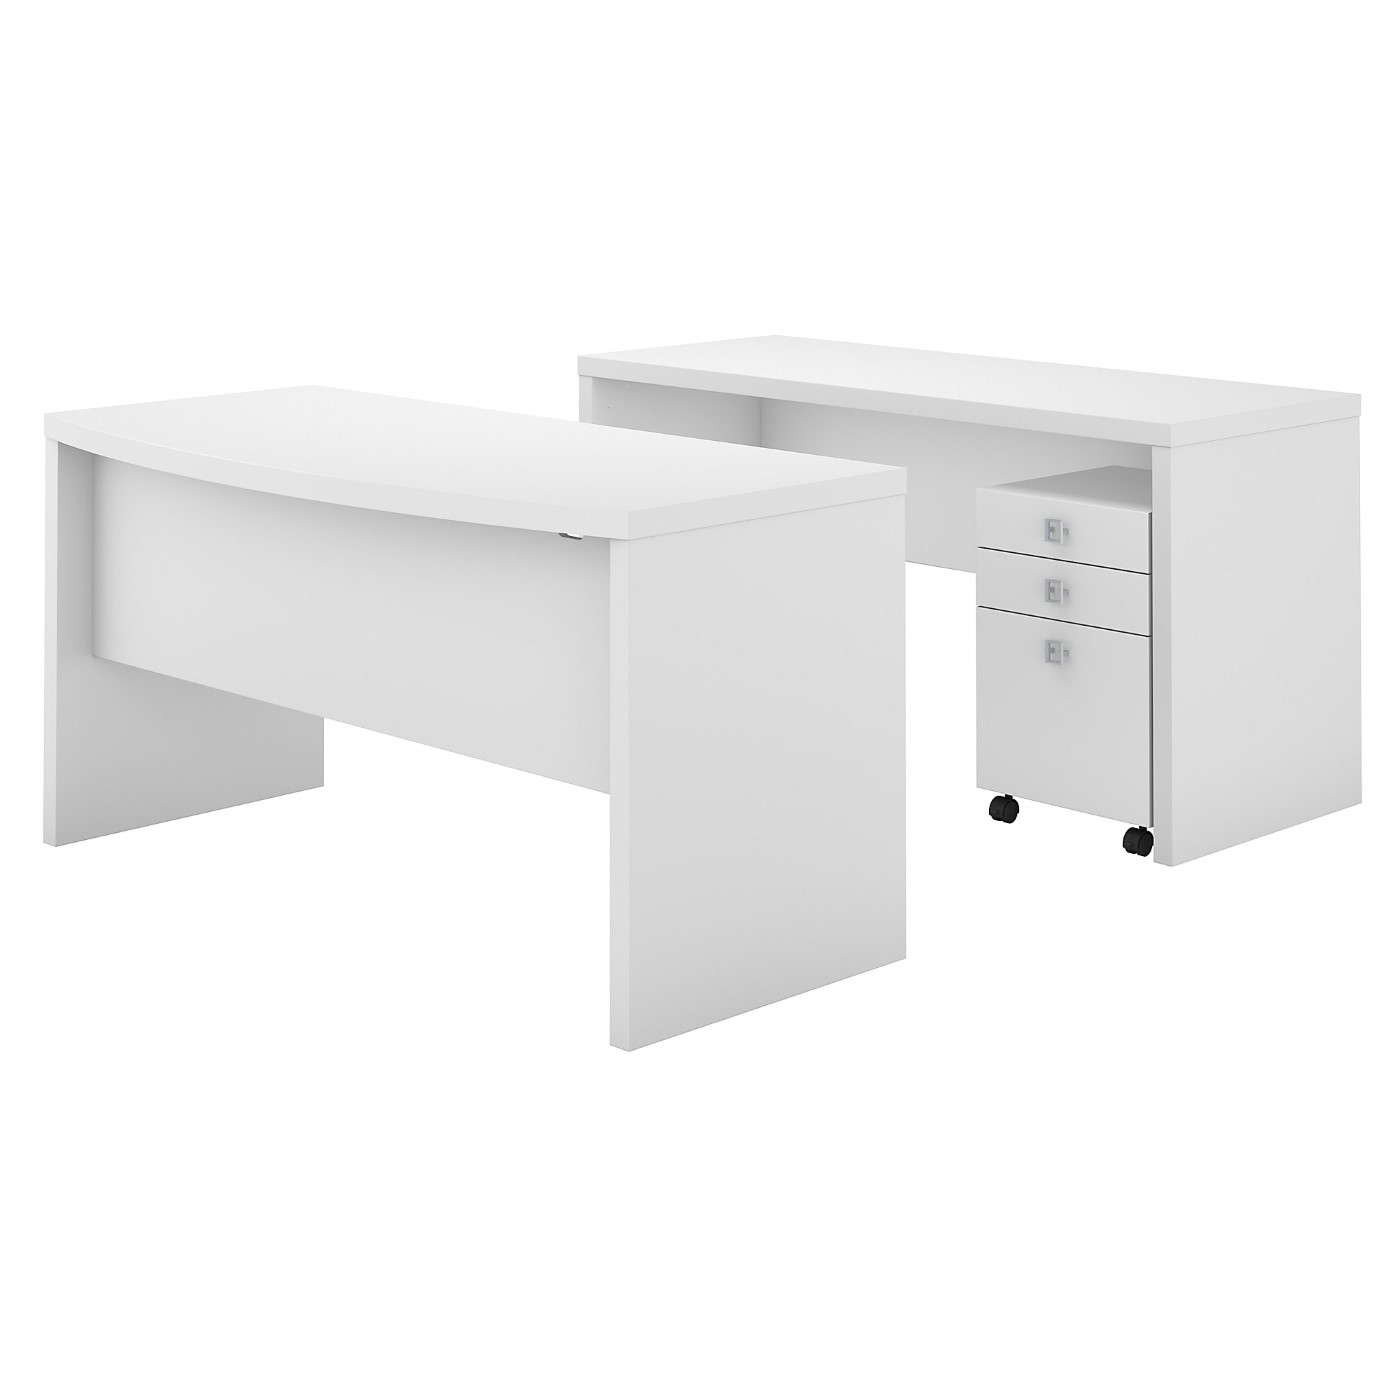 OFFICE BY KATHY IRELAND® ECHO BOW FRONT DESK AND CREDENZA WITH MOBILE FILE CABINET. FREE SHIPPING